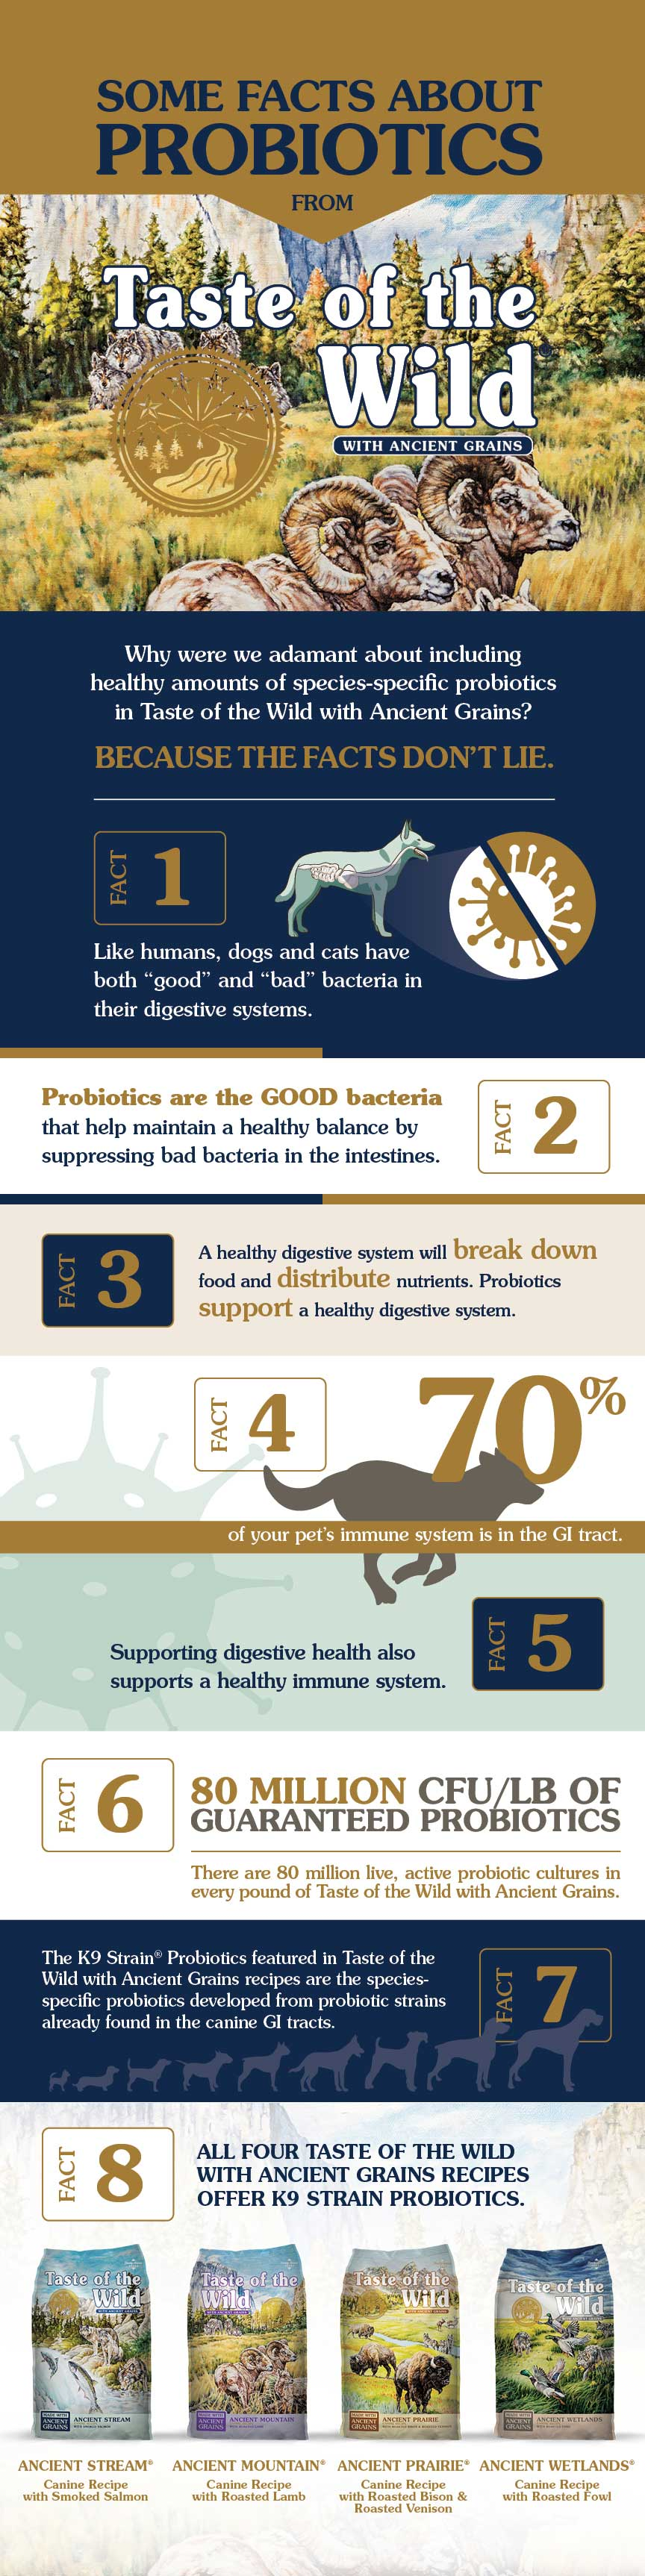 Some Facts About Probiotics graphic